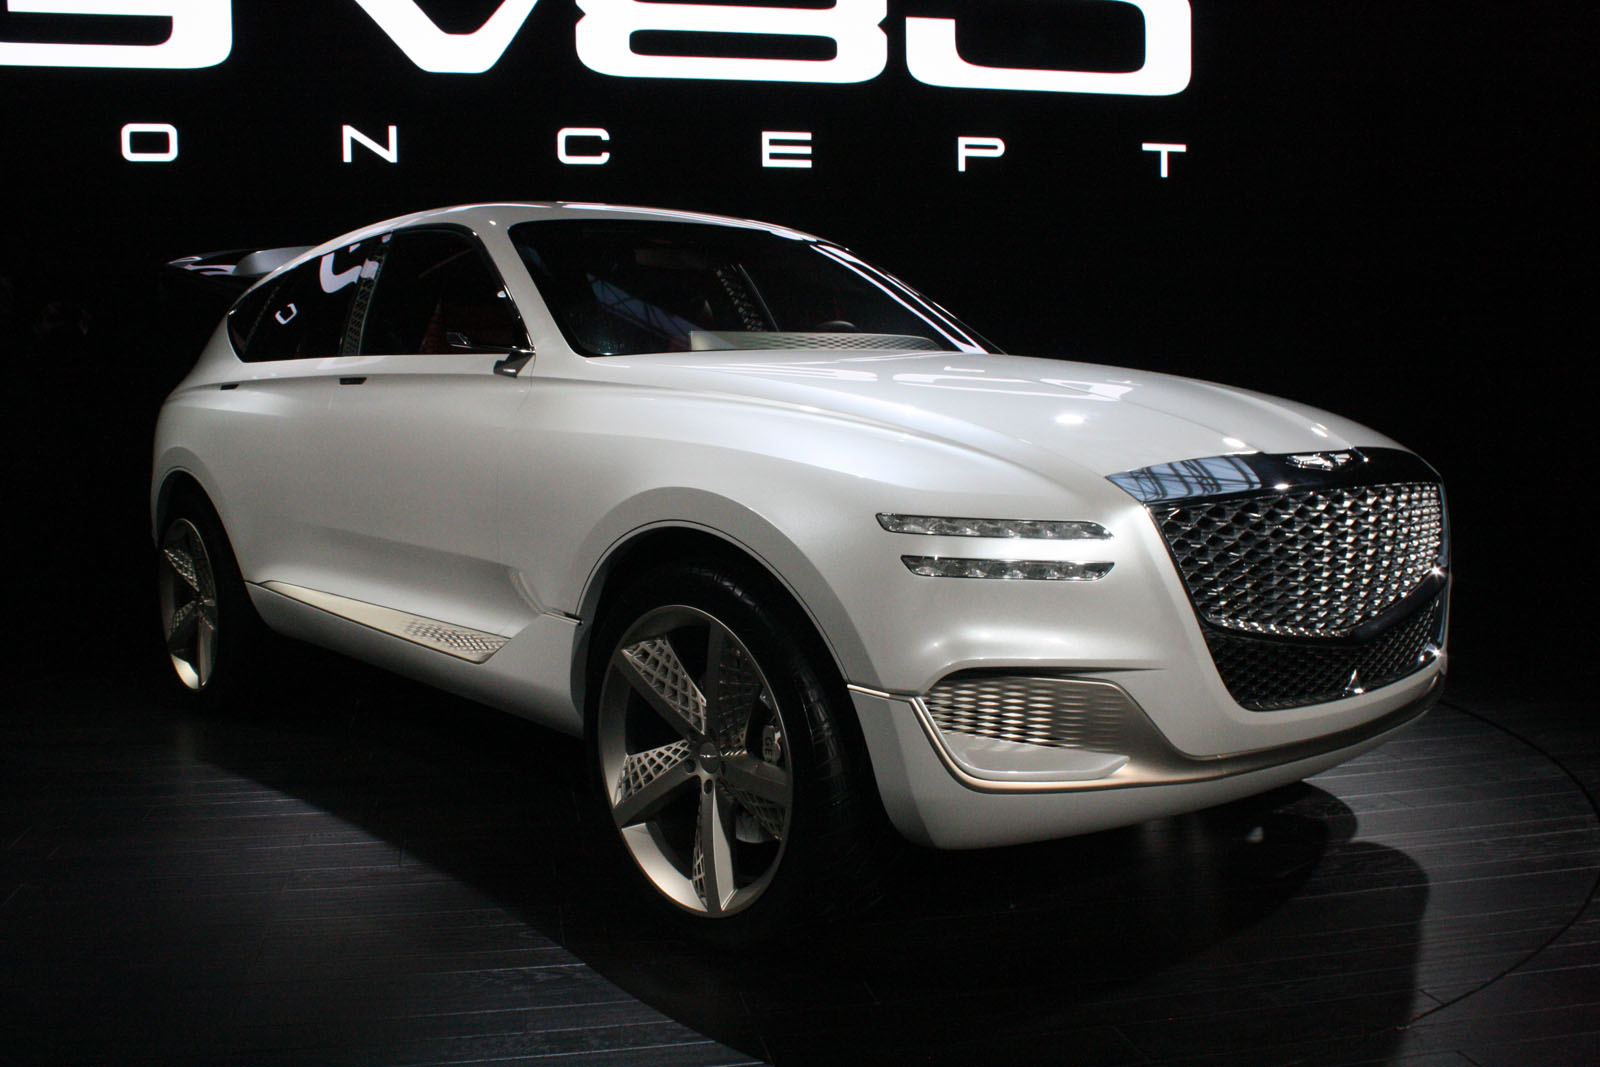 Genesis Goes Mesh Crazy With Funky Luxury Suv Concept Autoguide